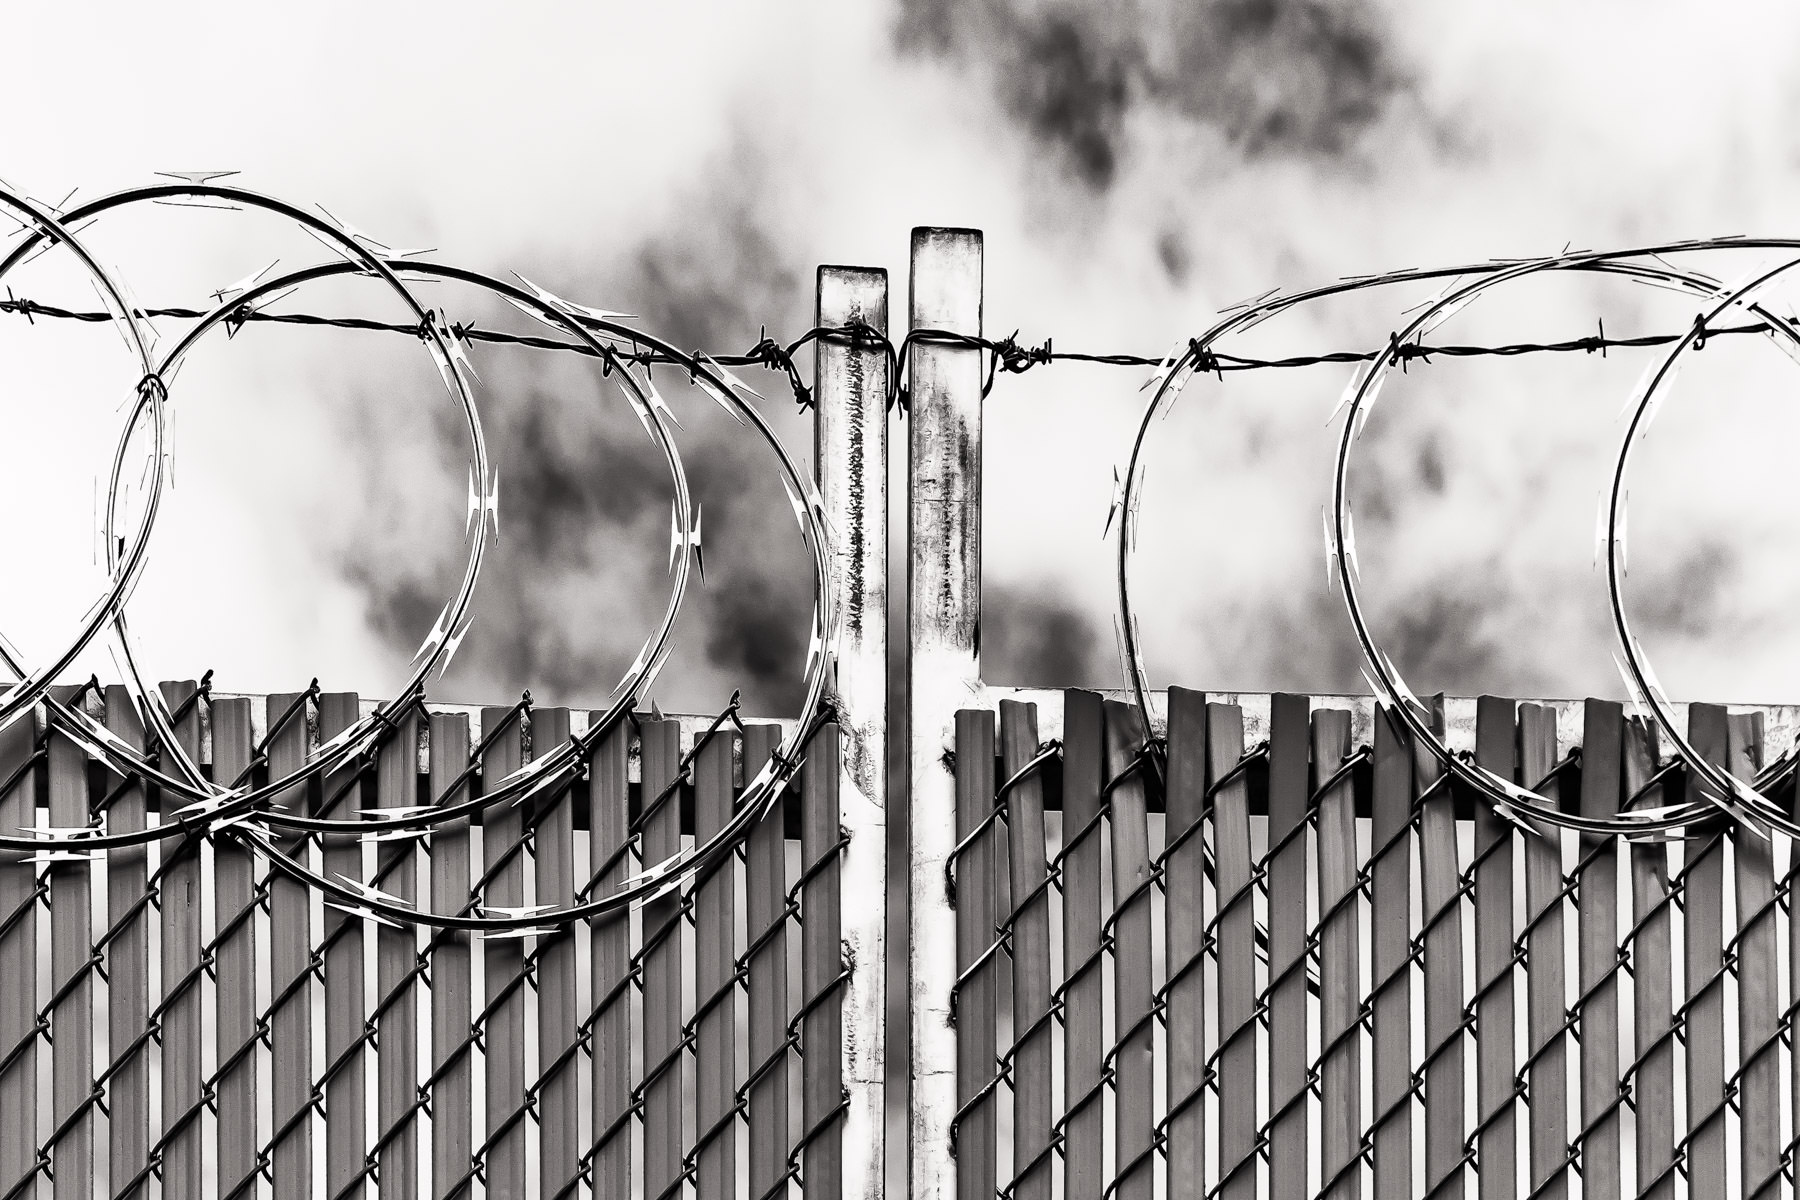 Coils of concertina wire top a fence in Dallas' Deep Ellum neighborhood.